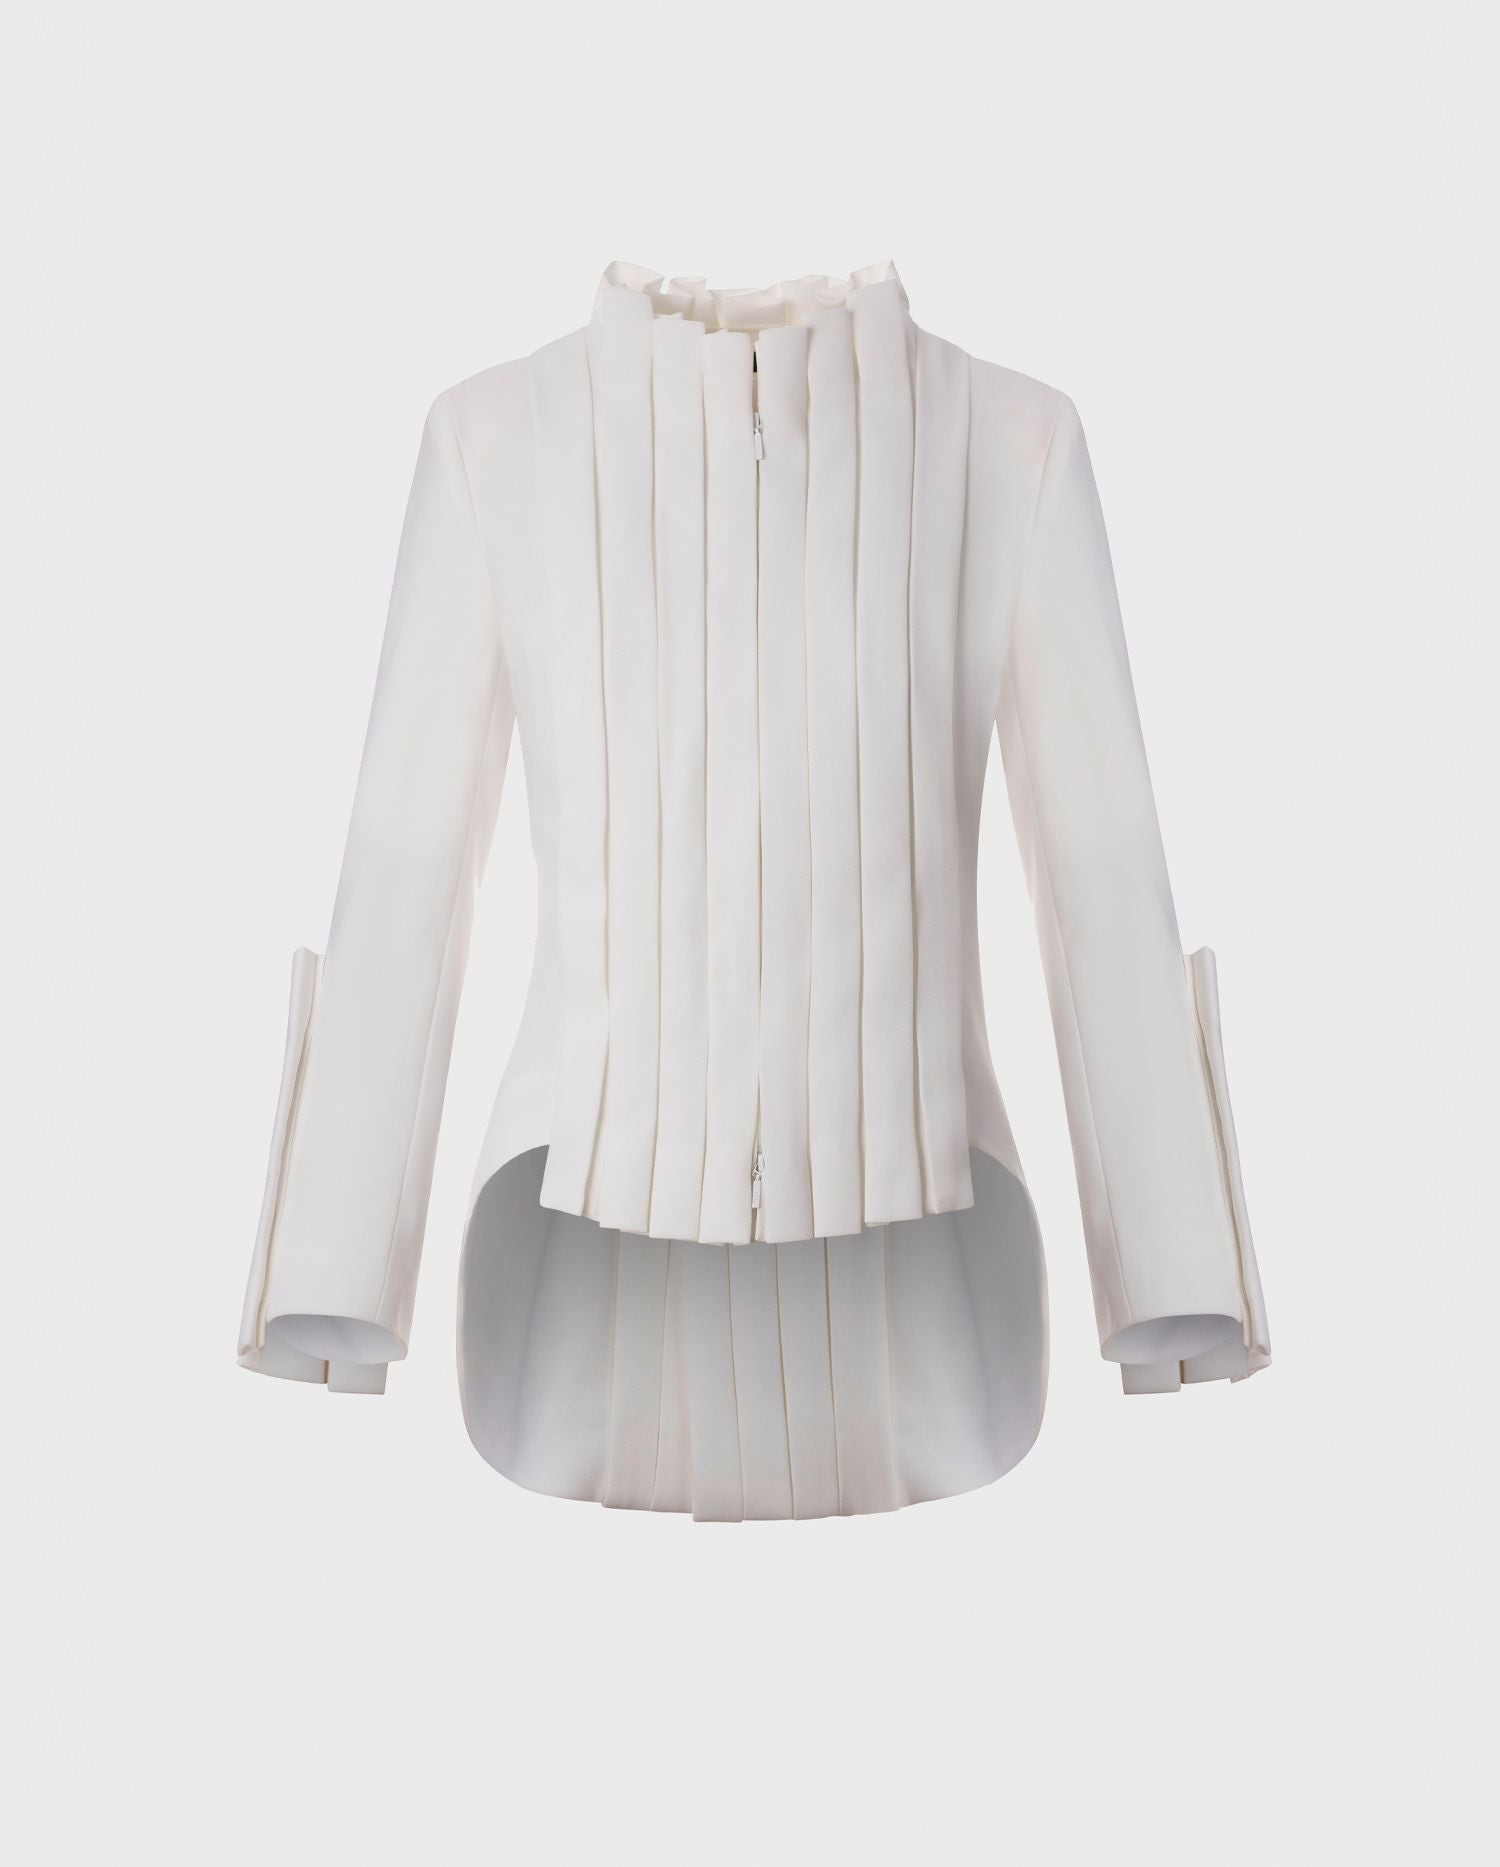 The SECRET-WHITE jacket delivers looks of pure glamour